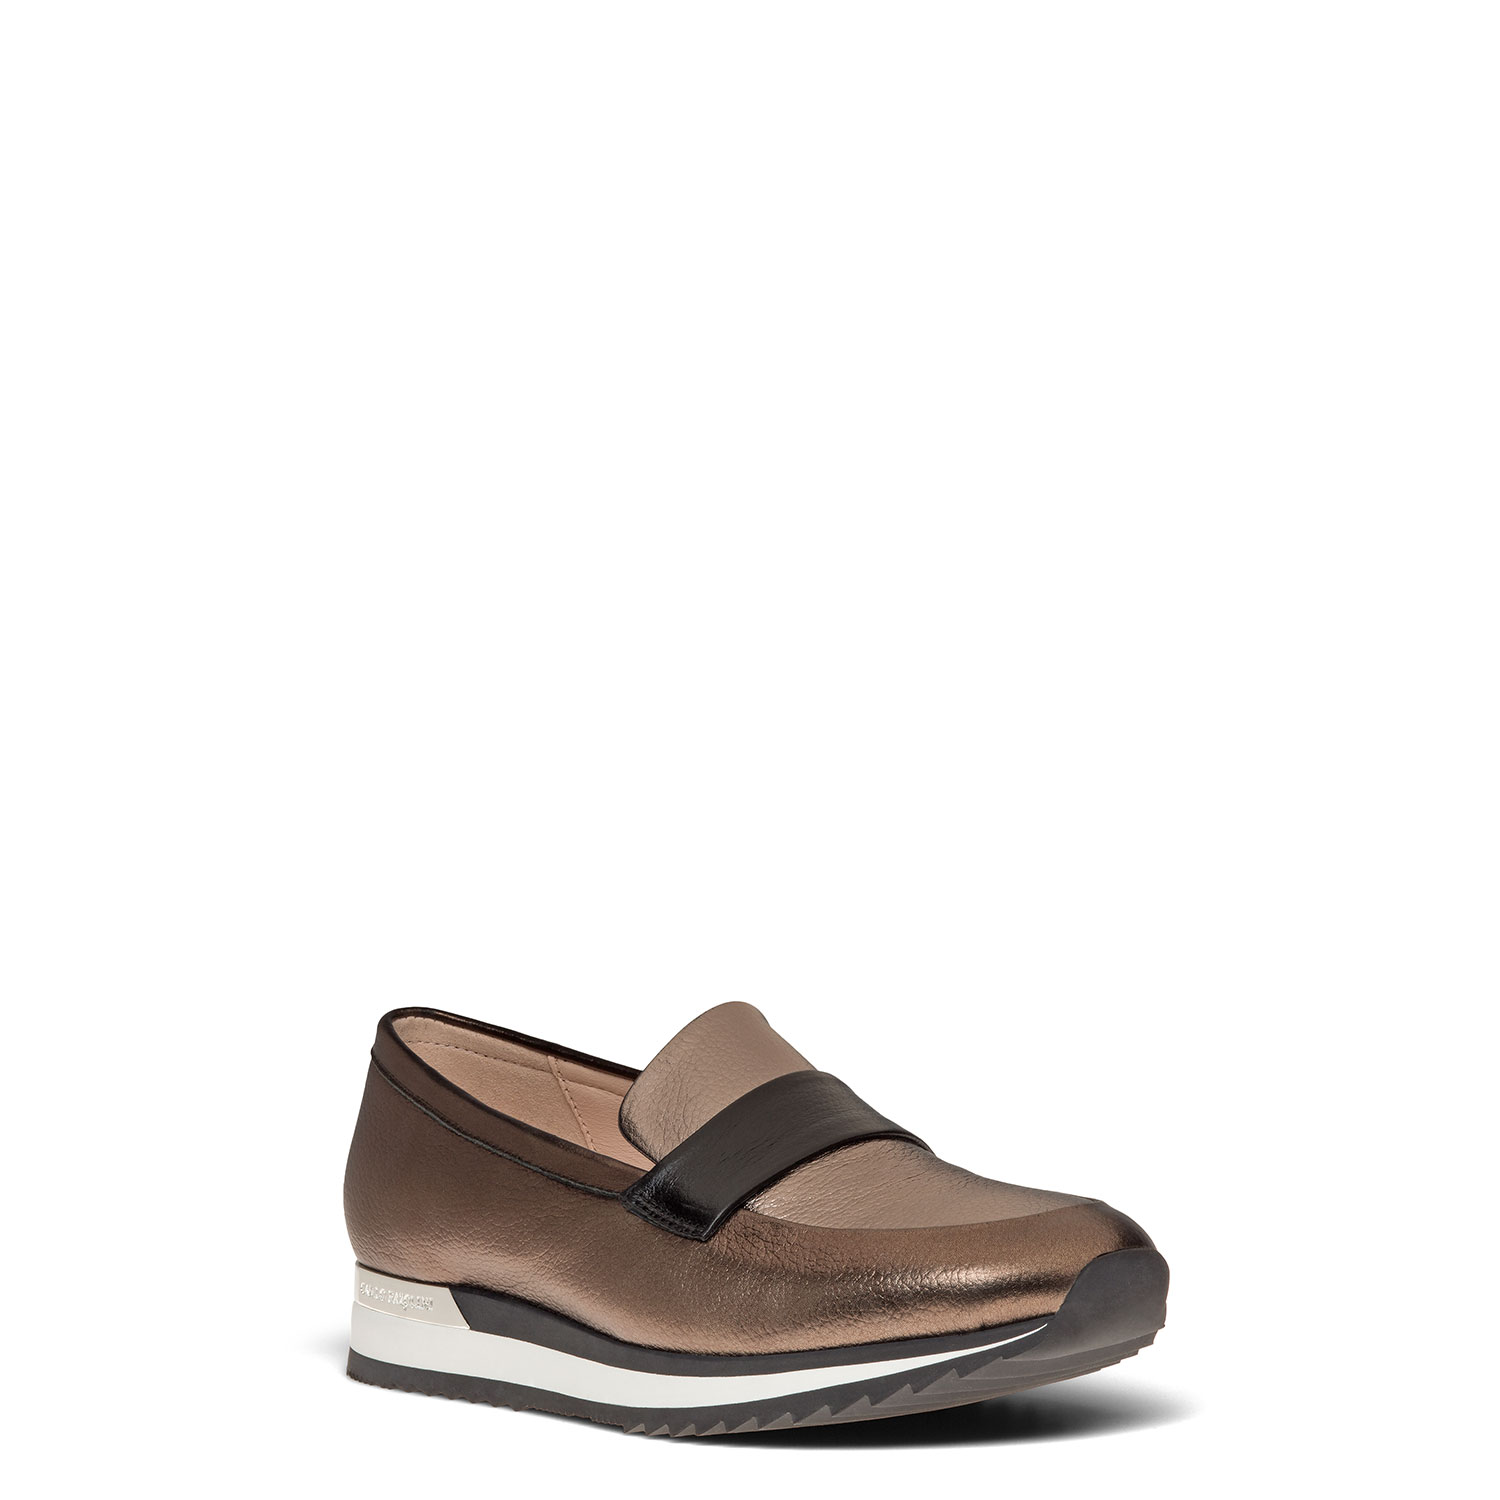 Women's shoes CARLO PAZOLINI JH-END7-20